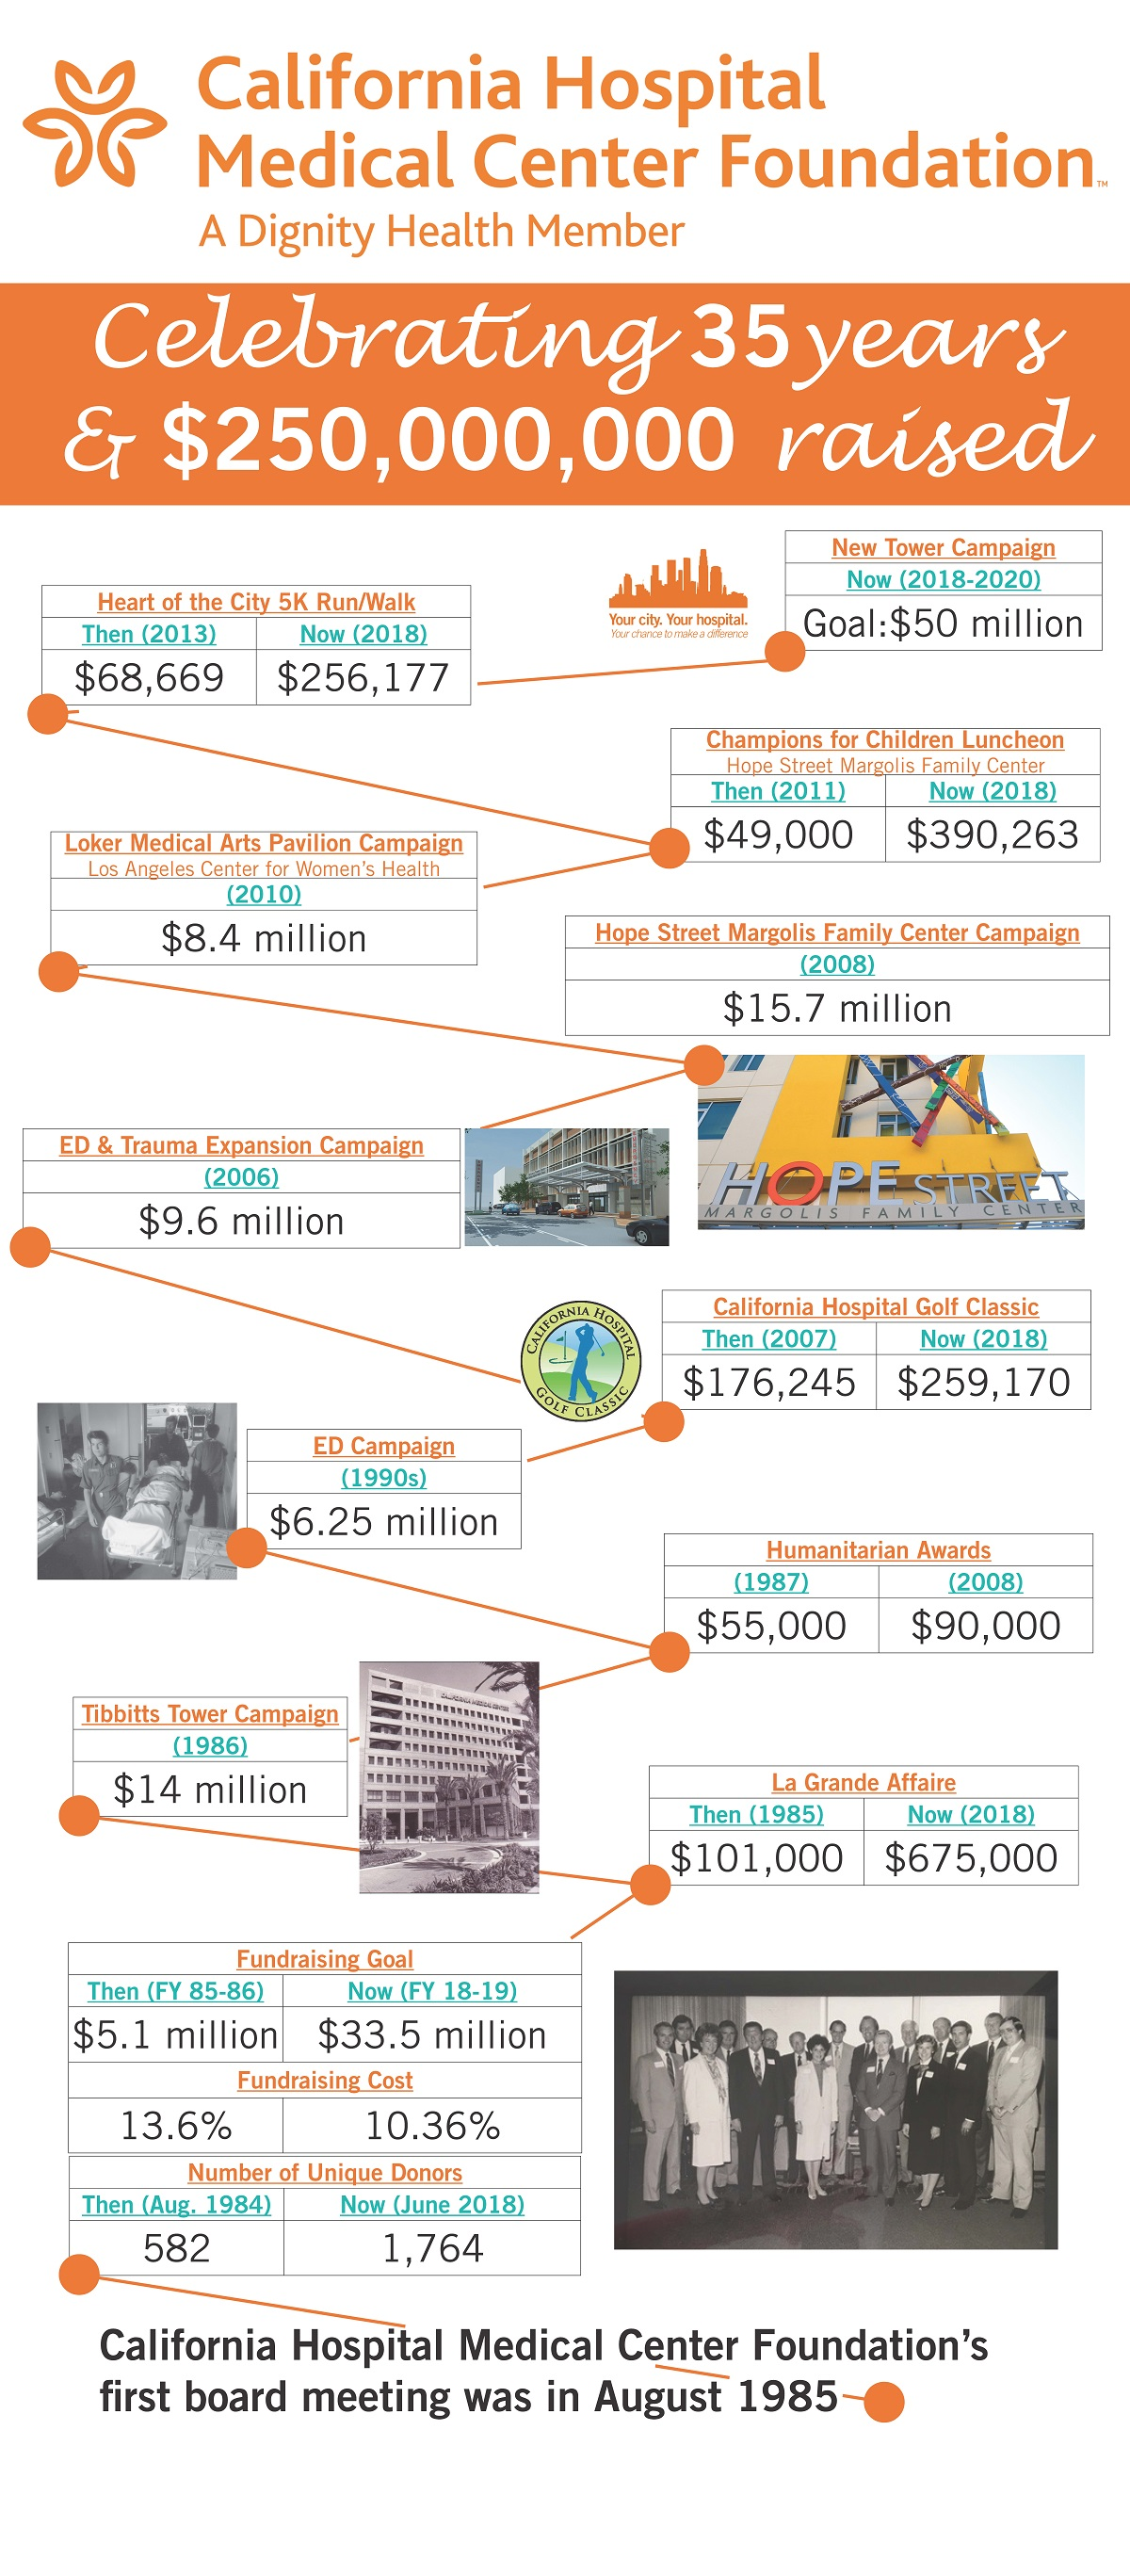 CHMC has raised over $250,000,000 over the past 35 years and has supported numerous hospital expansions